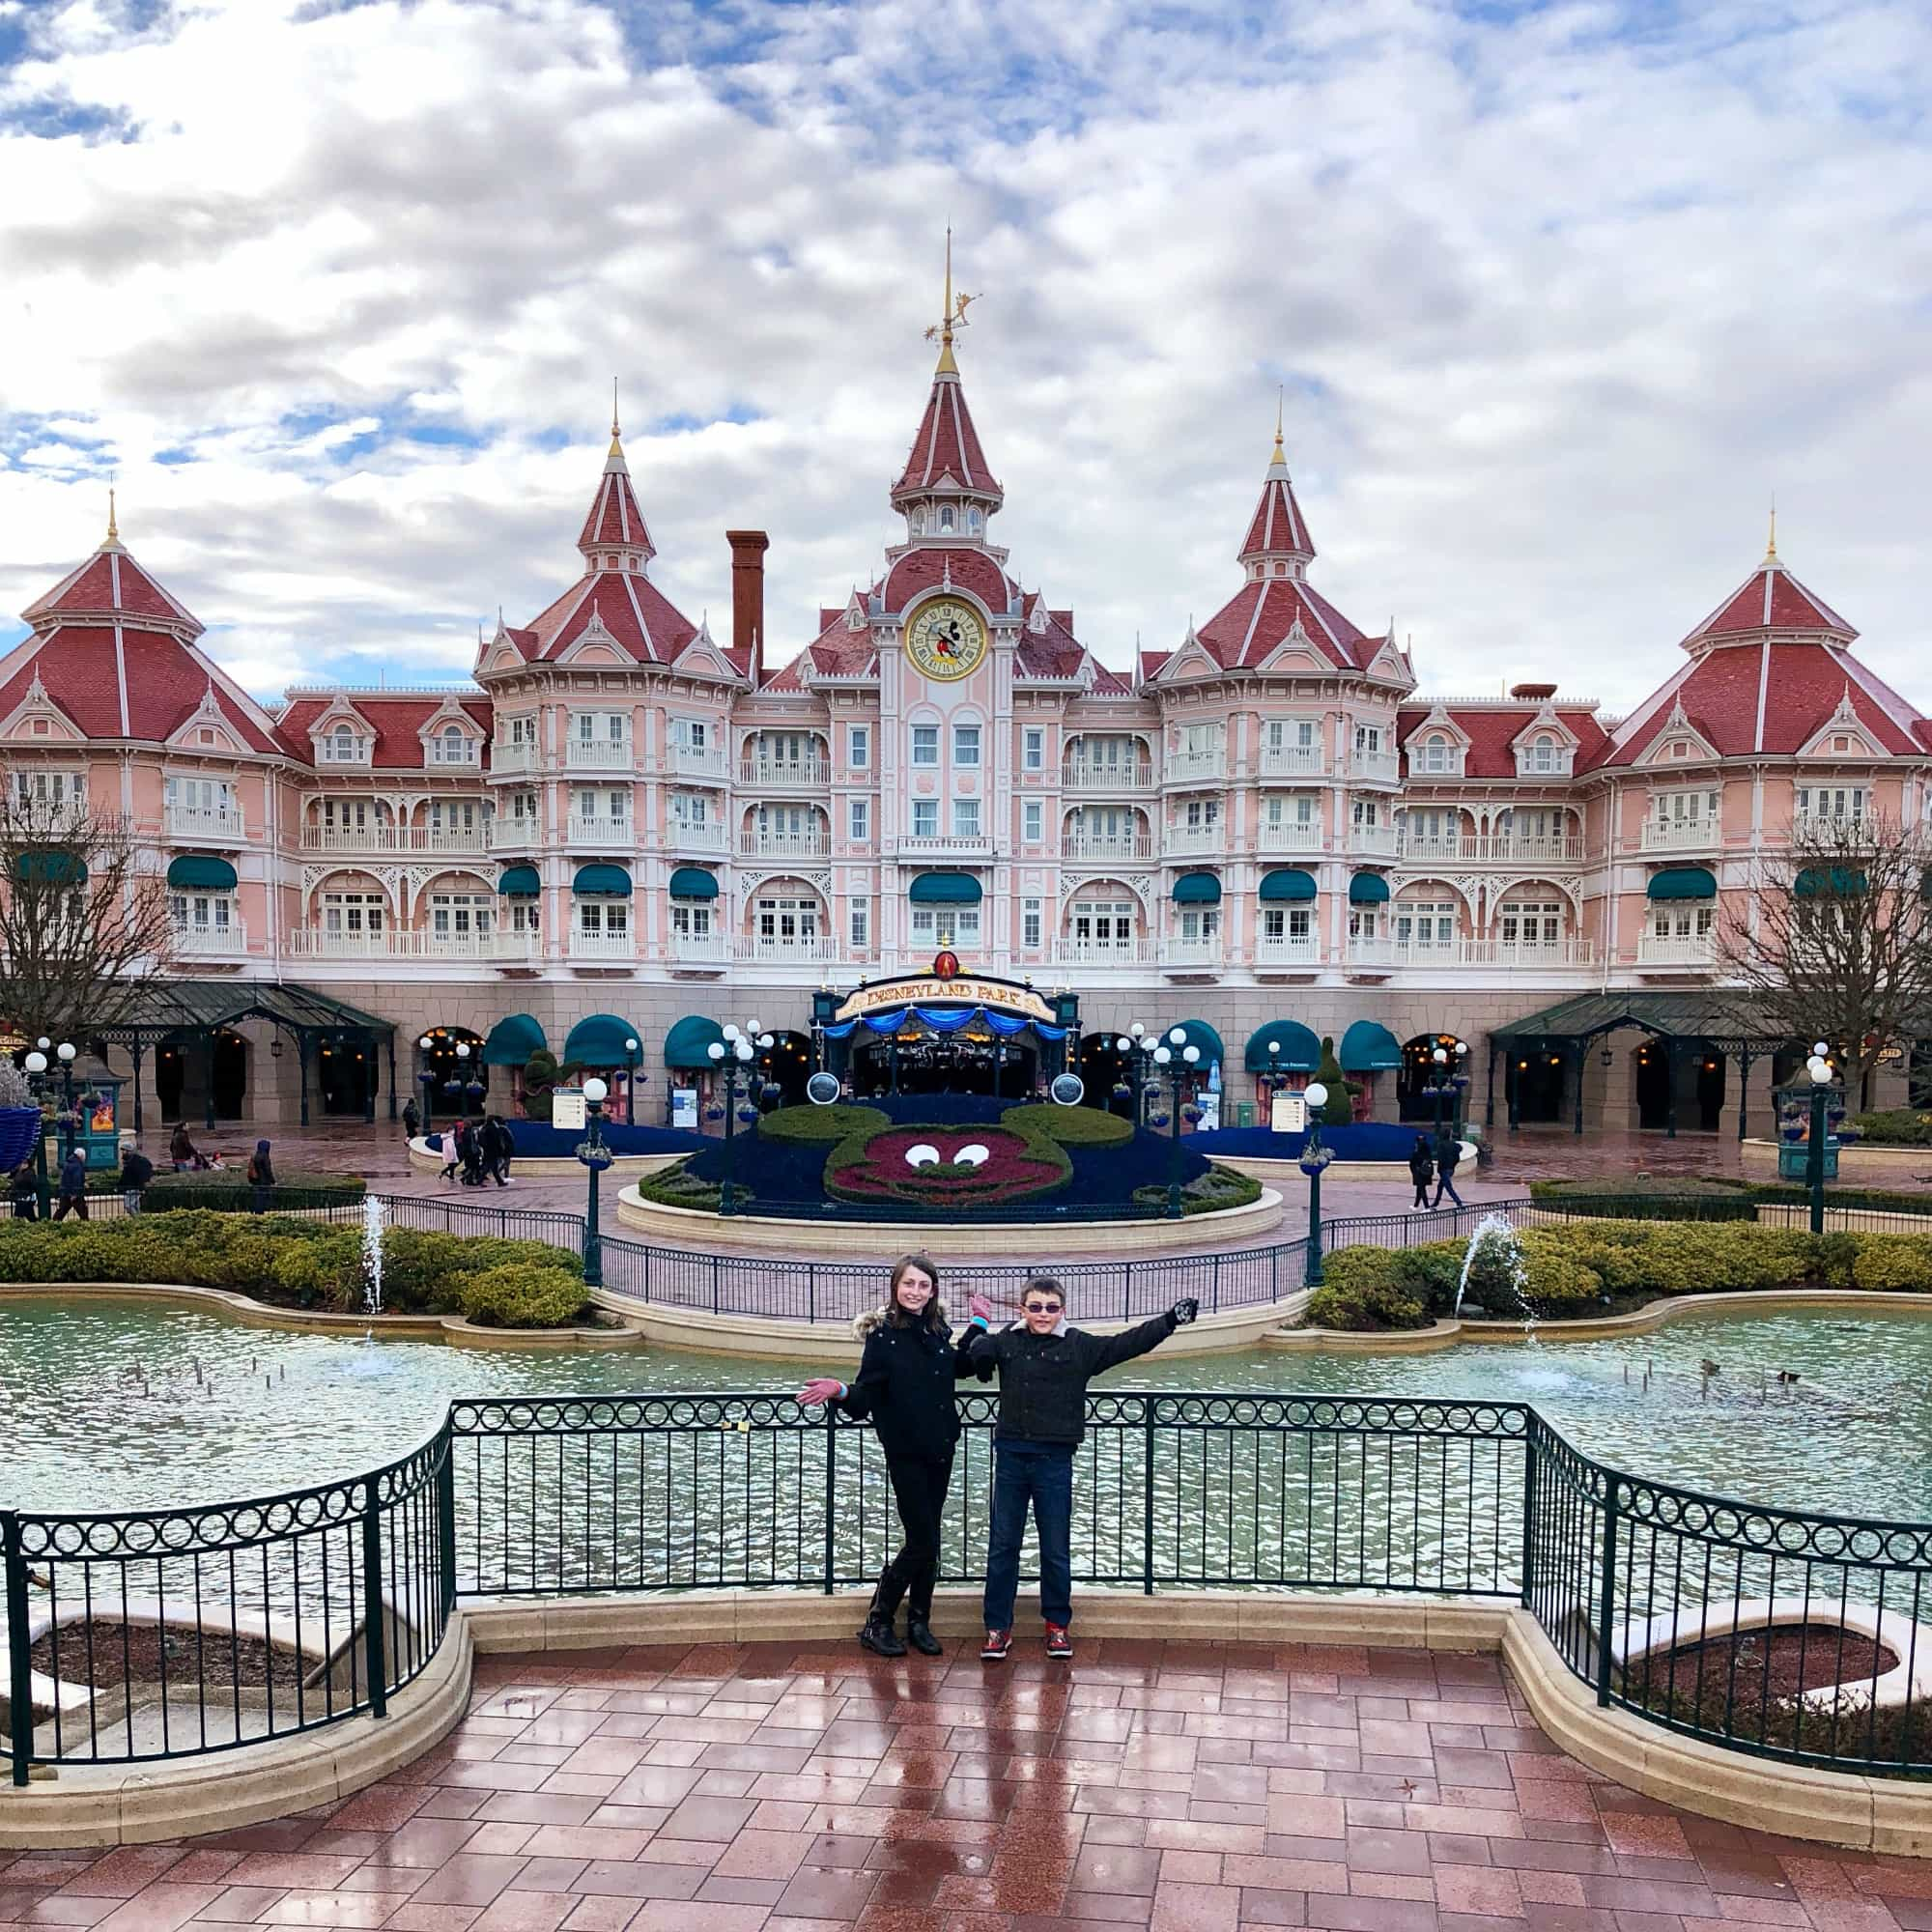 Disneyland Paris is a worthy addition to a trip to Paris with kids